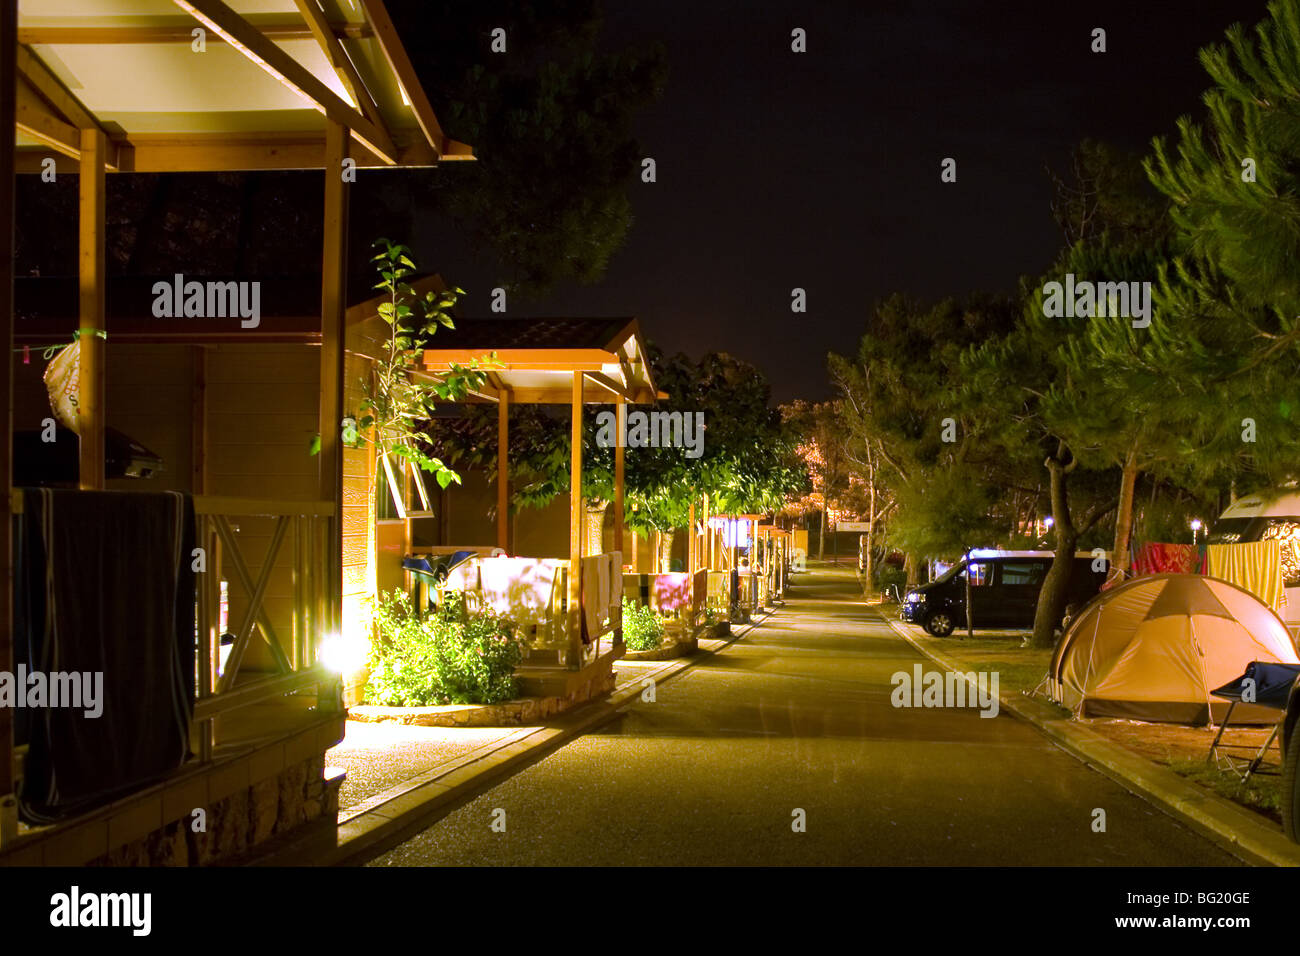 Summer night shot of log cabins on campsite - Stock Image